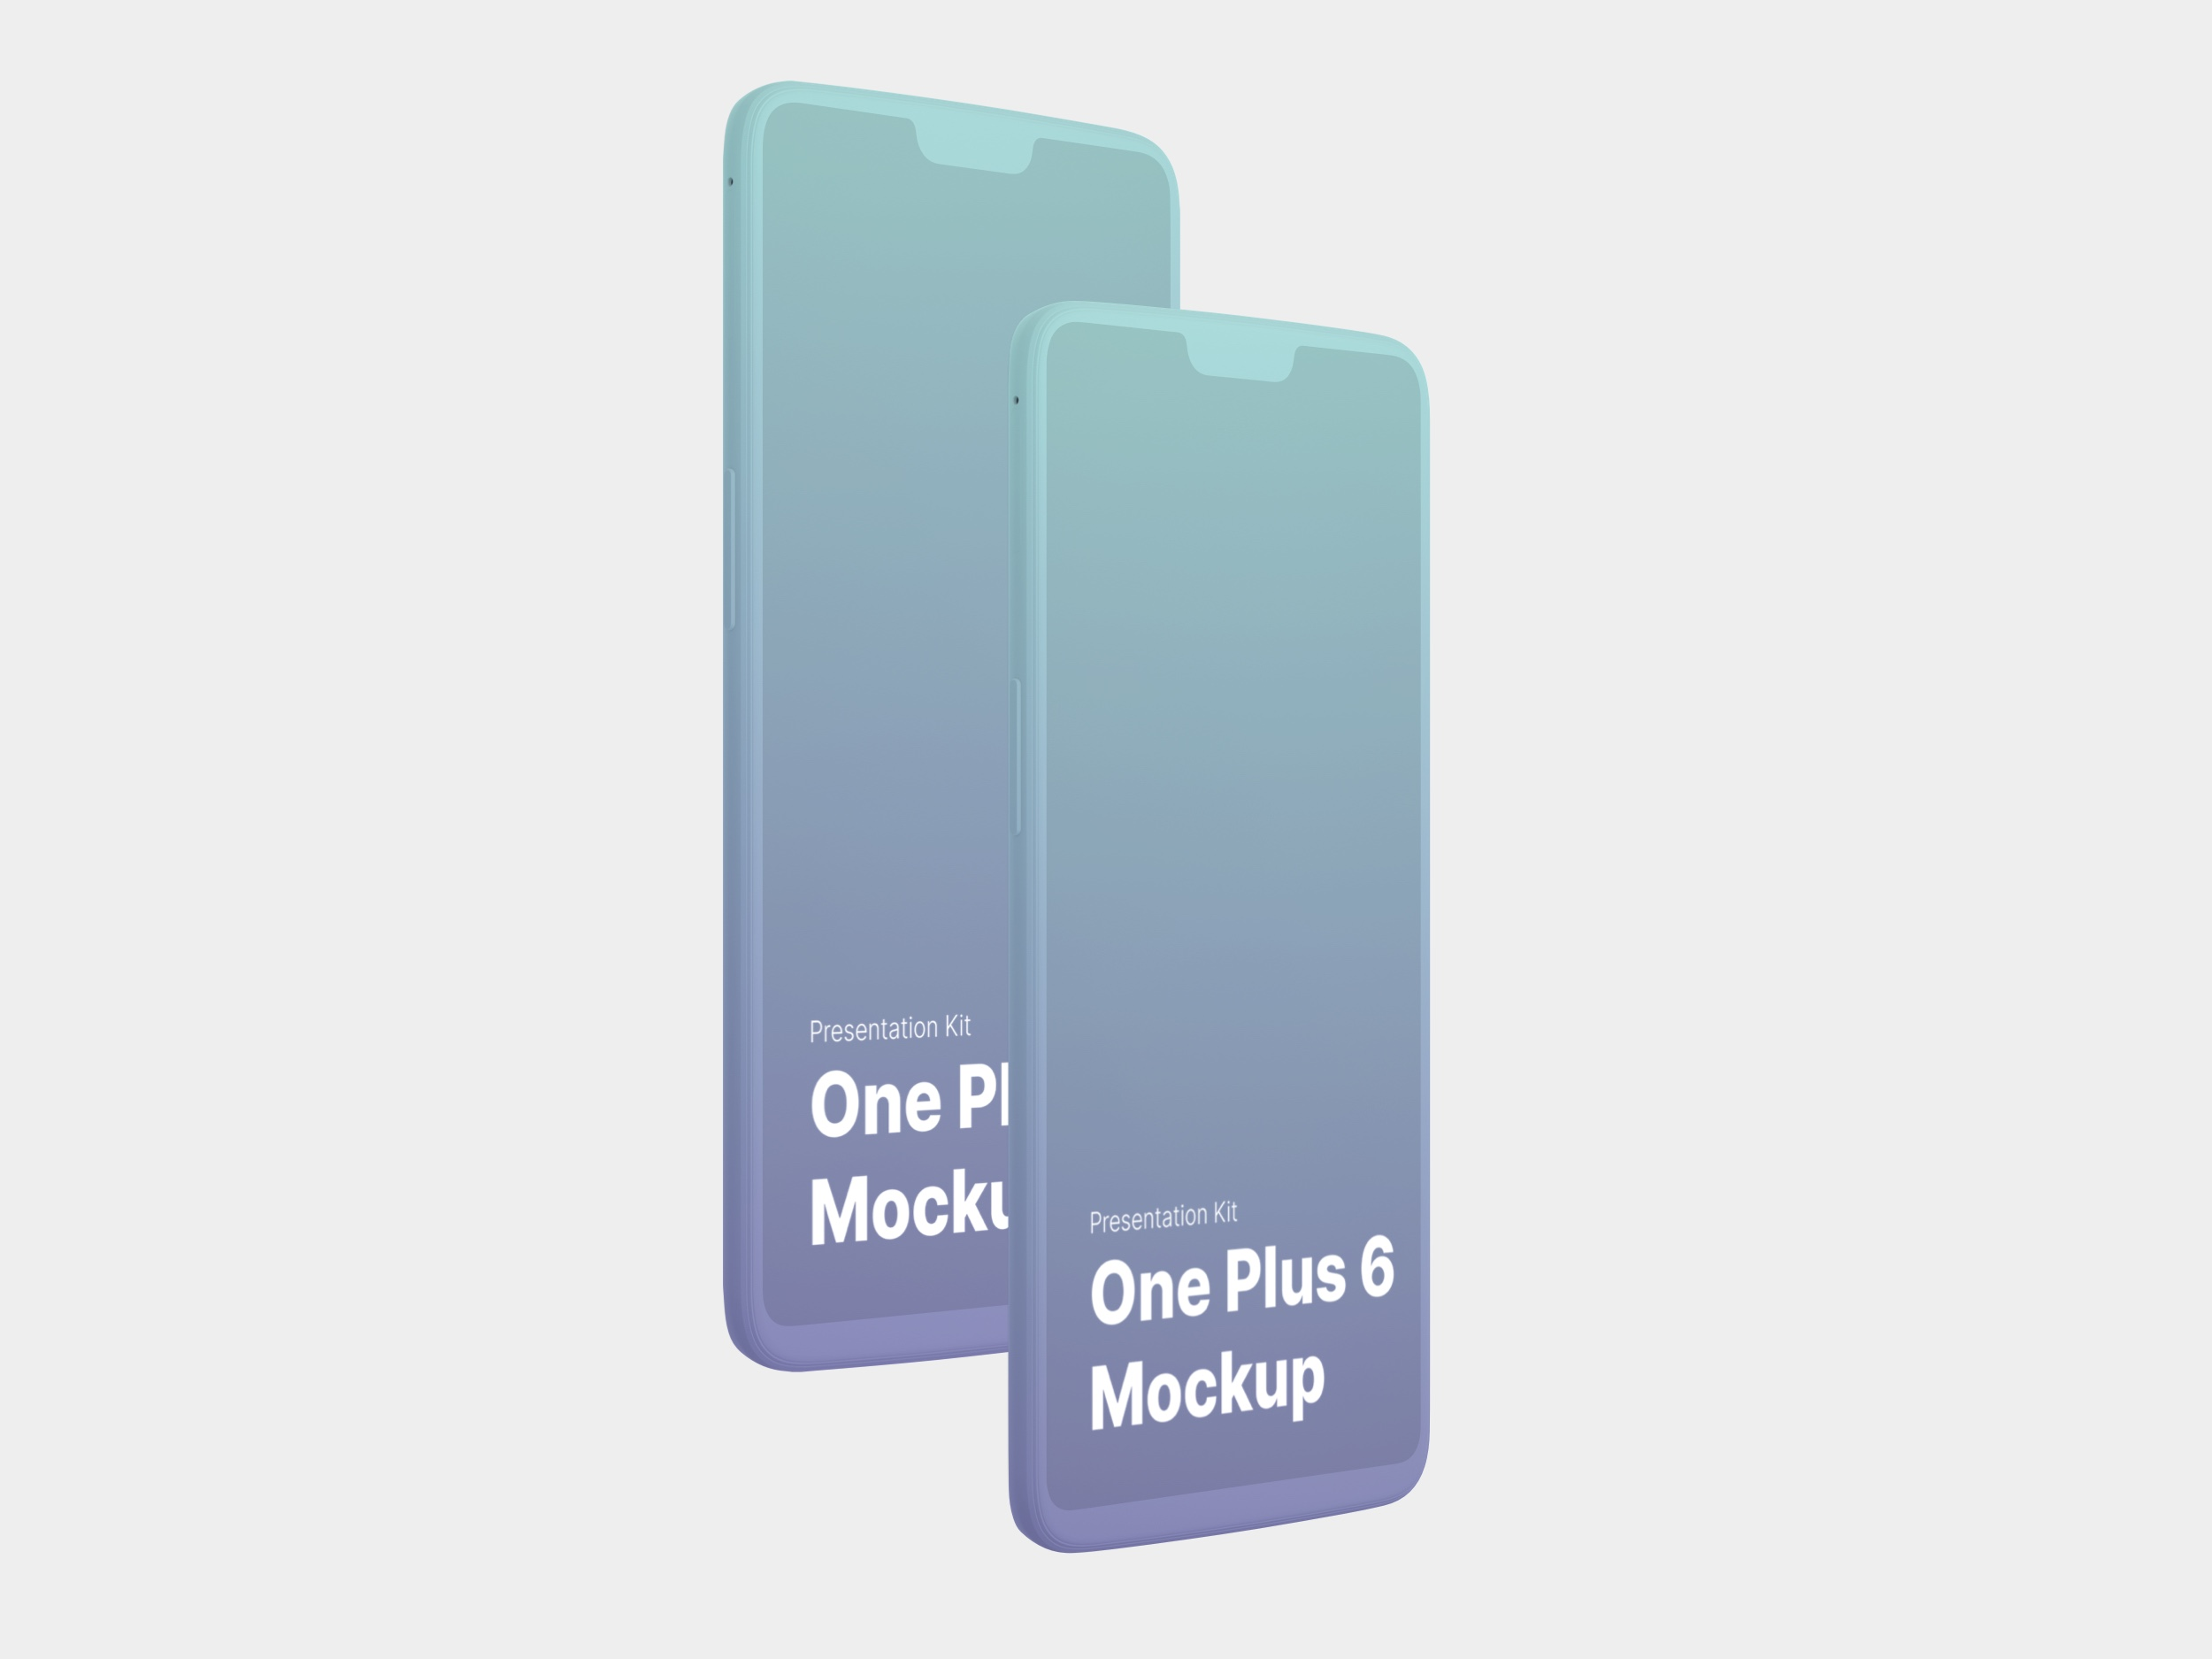 OnePlus 6 Mockups for Sketch, Photoshop, Figma.